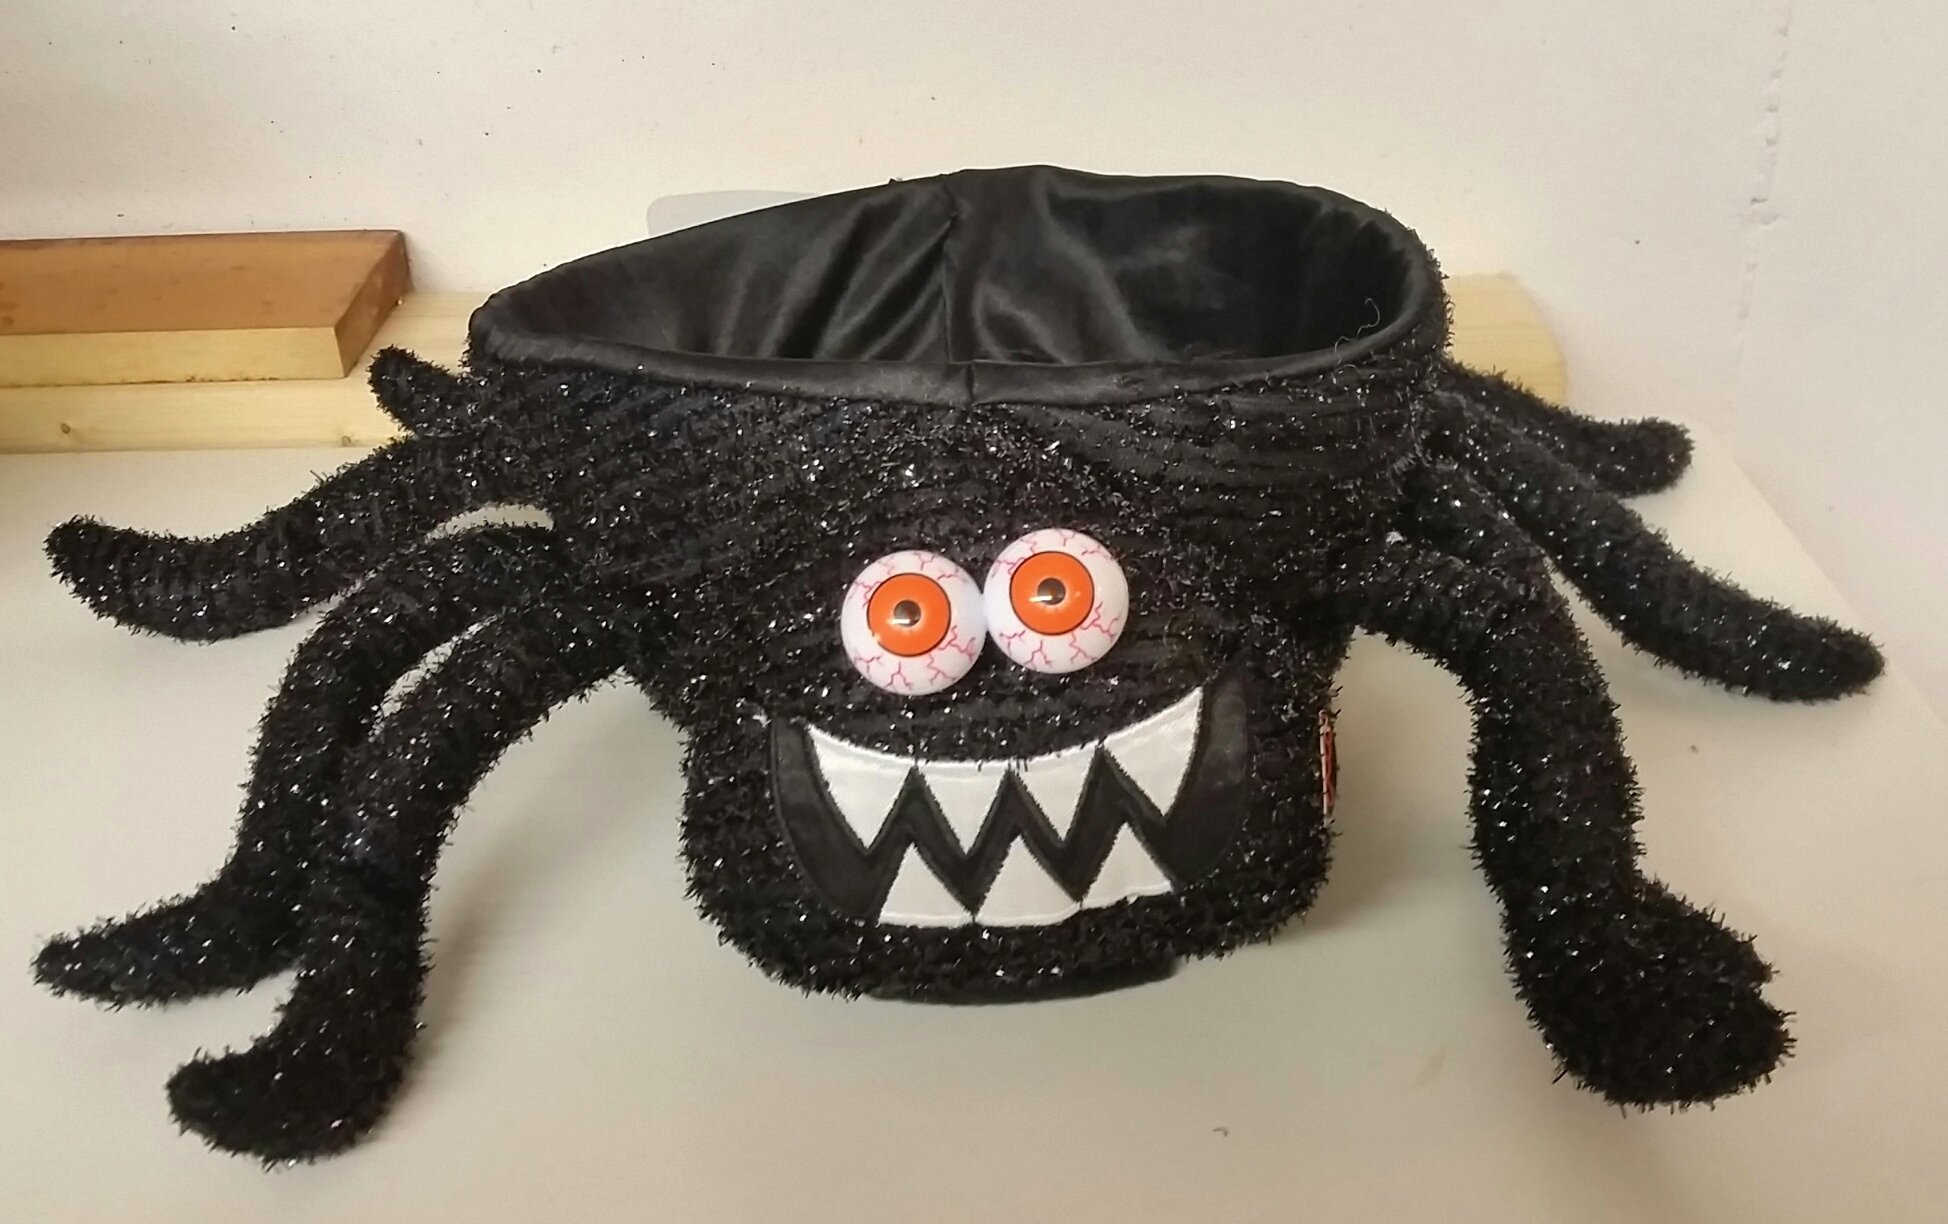 19 Inch Black Spider Light Up Musical Plush Halloween Candy Bowl - Plays ''Zombie Dance'' by Eerie Alley (Image #2)